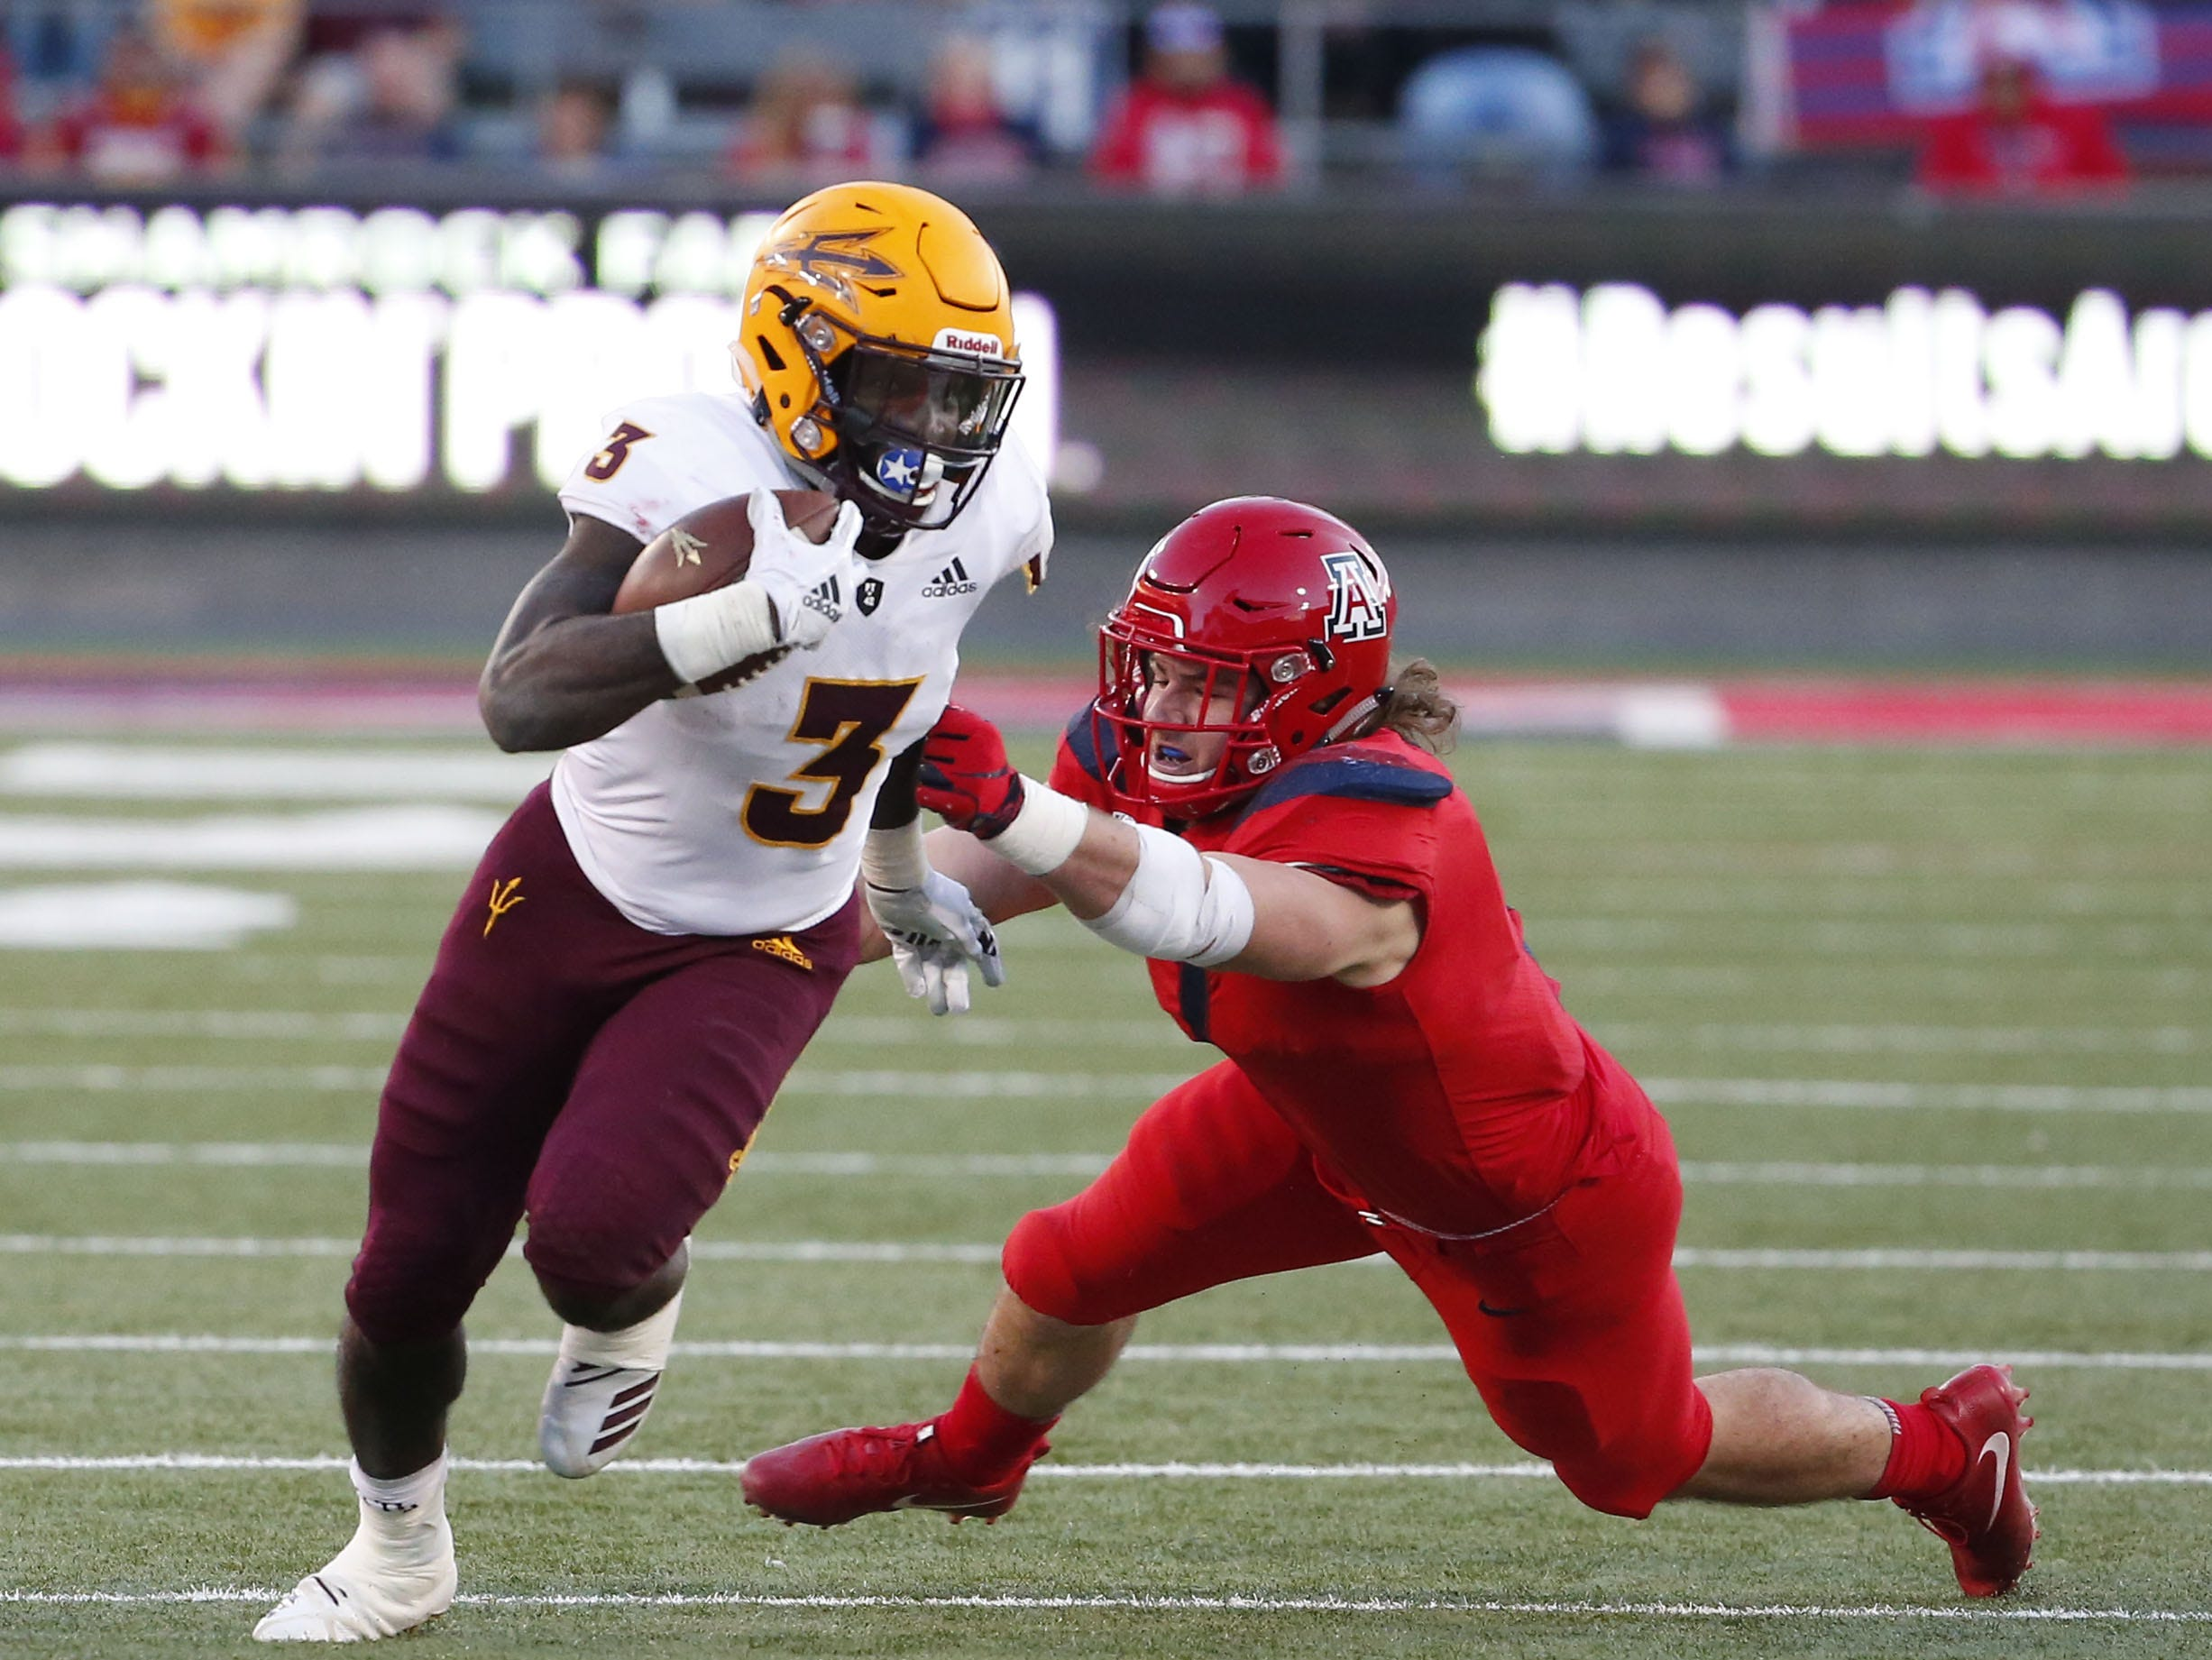 Arizona State Sun Devils running back Eno Benjamin (3) breaks a tackle by Arizona Wildcats linebacker Colin Schooler (7) during the Territorial Cup football game at Arizona Stadium in Tucson on November 24.